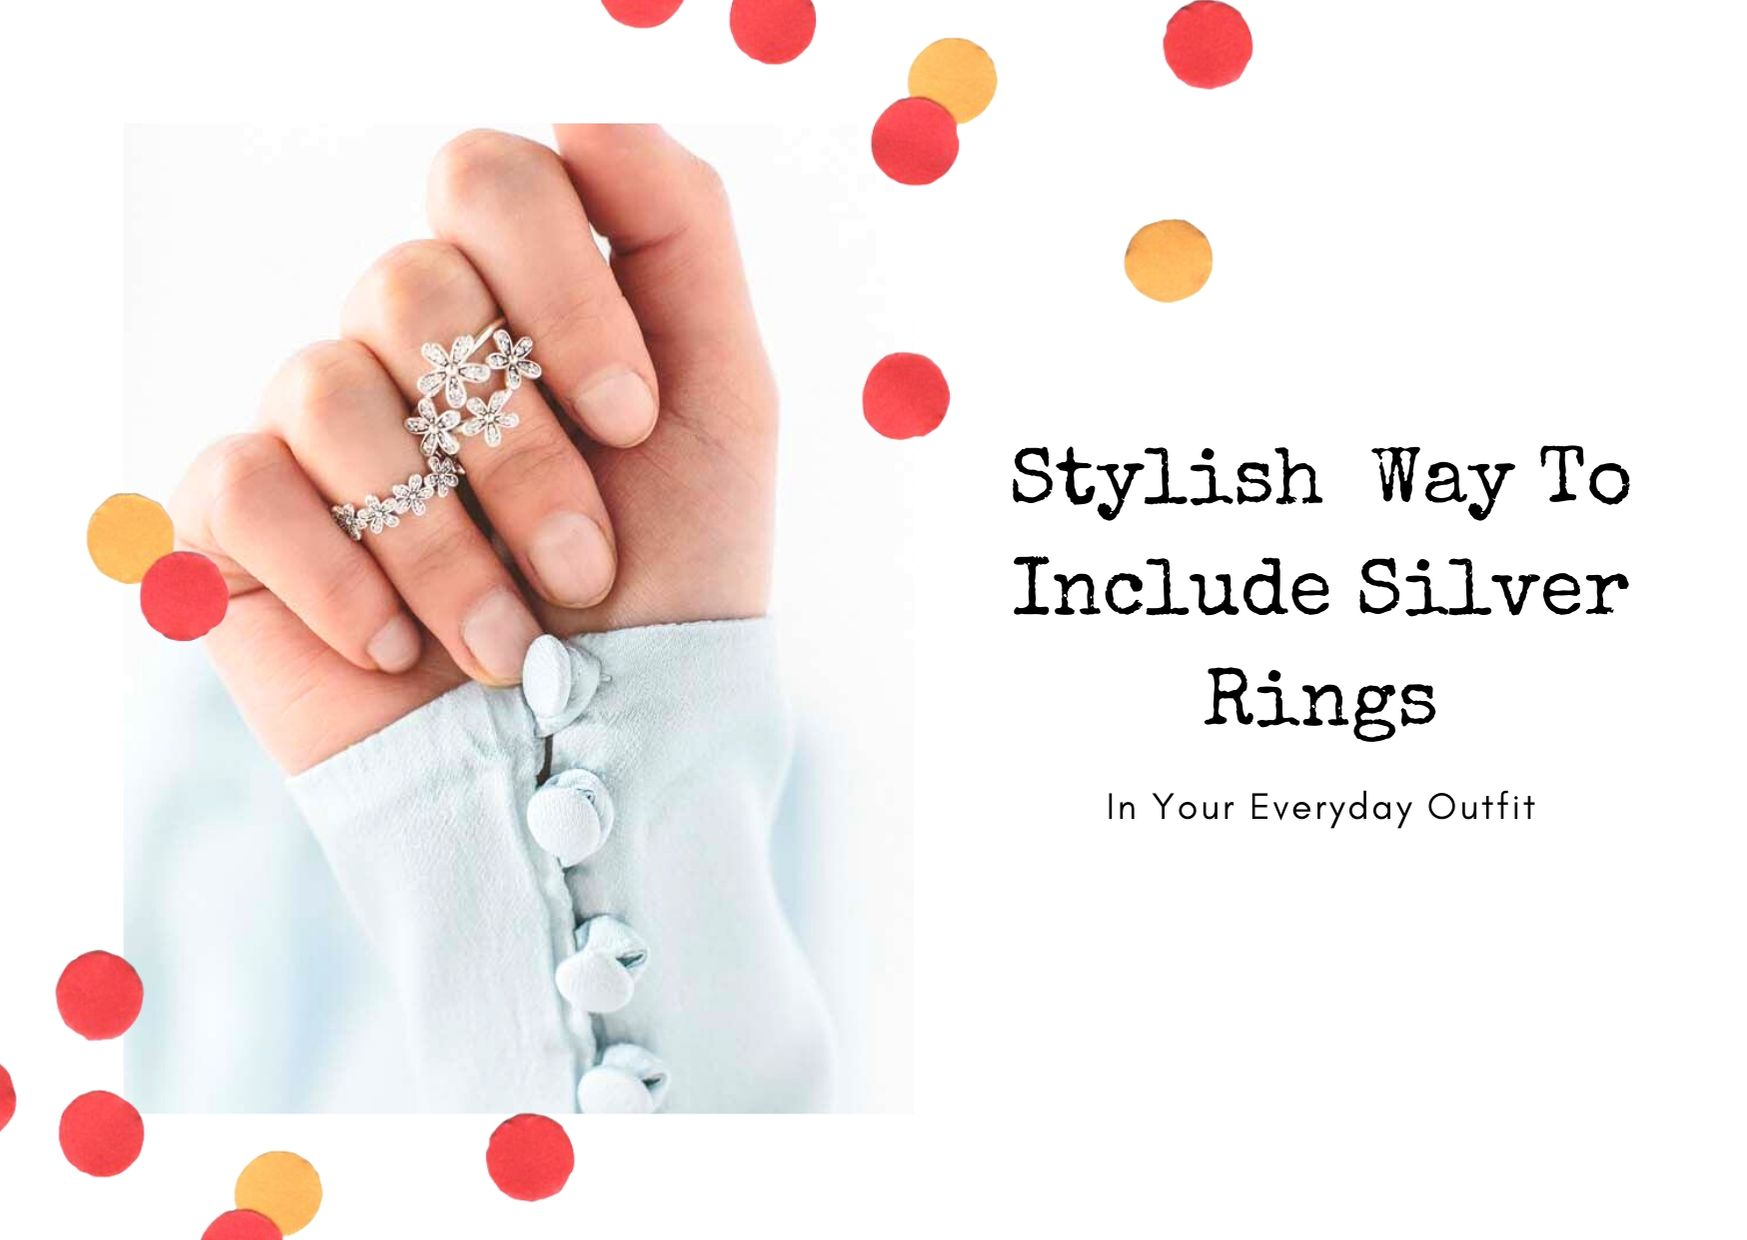 Stylish  Way To Include Silver Rings In Your Everyday Outfit